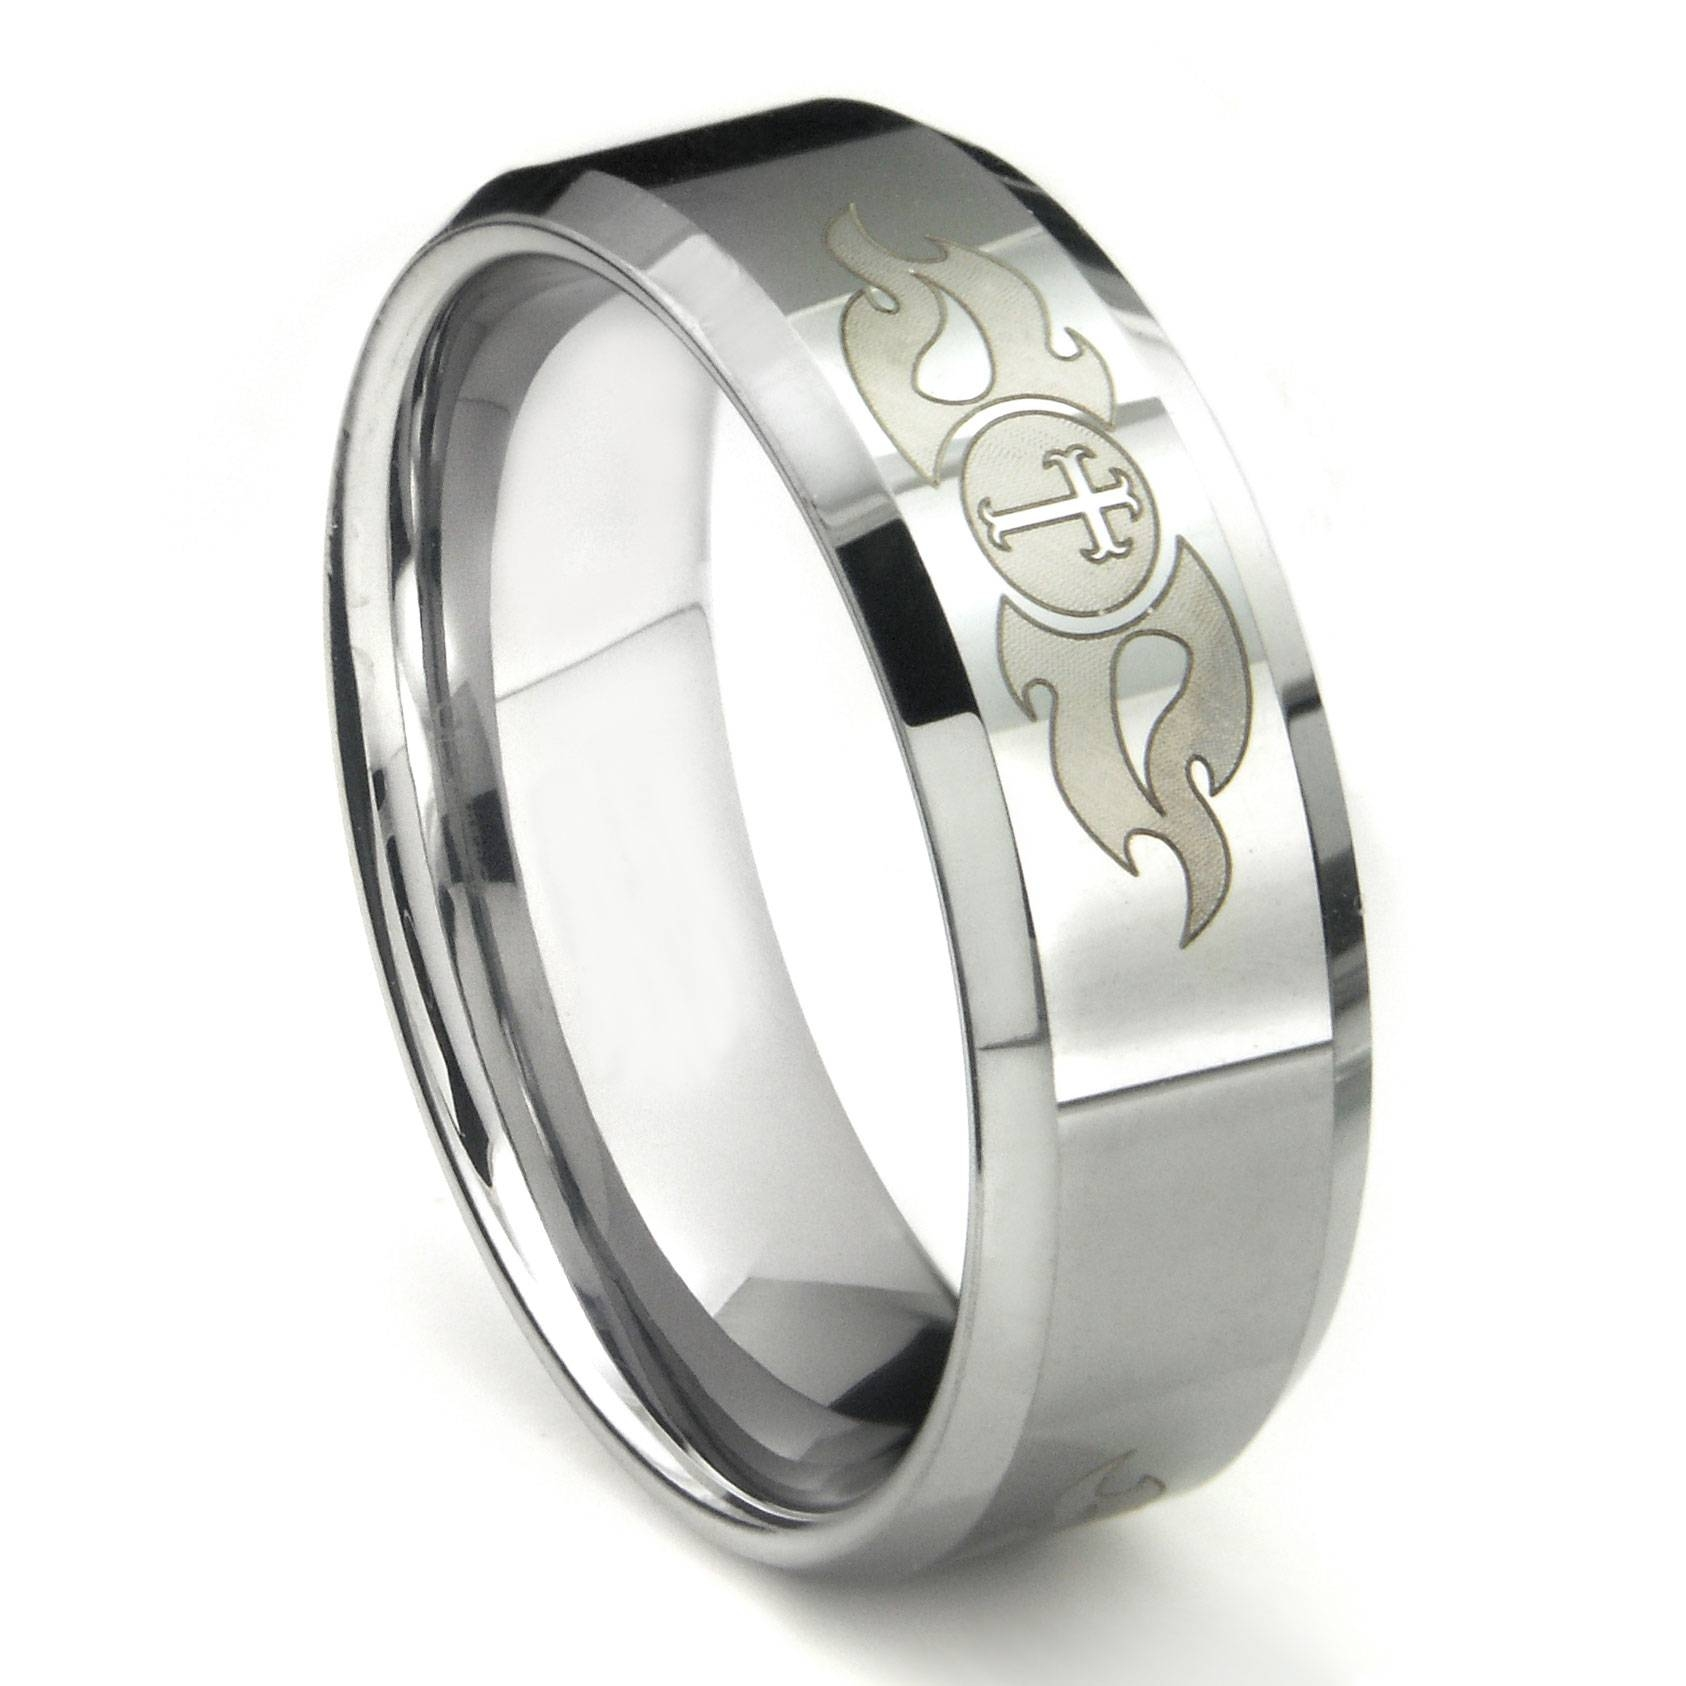 Tungsten Carbide Laser Engraved Fiery Cross Wedding Band Ring In Mens Wedding Bands With Engraving (View 10 of 15)